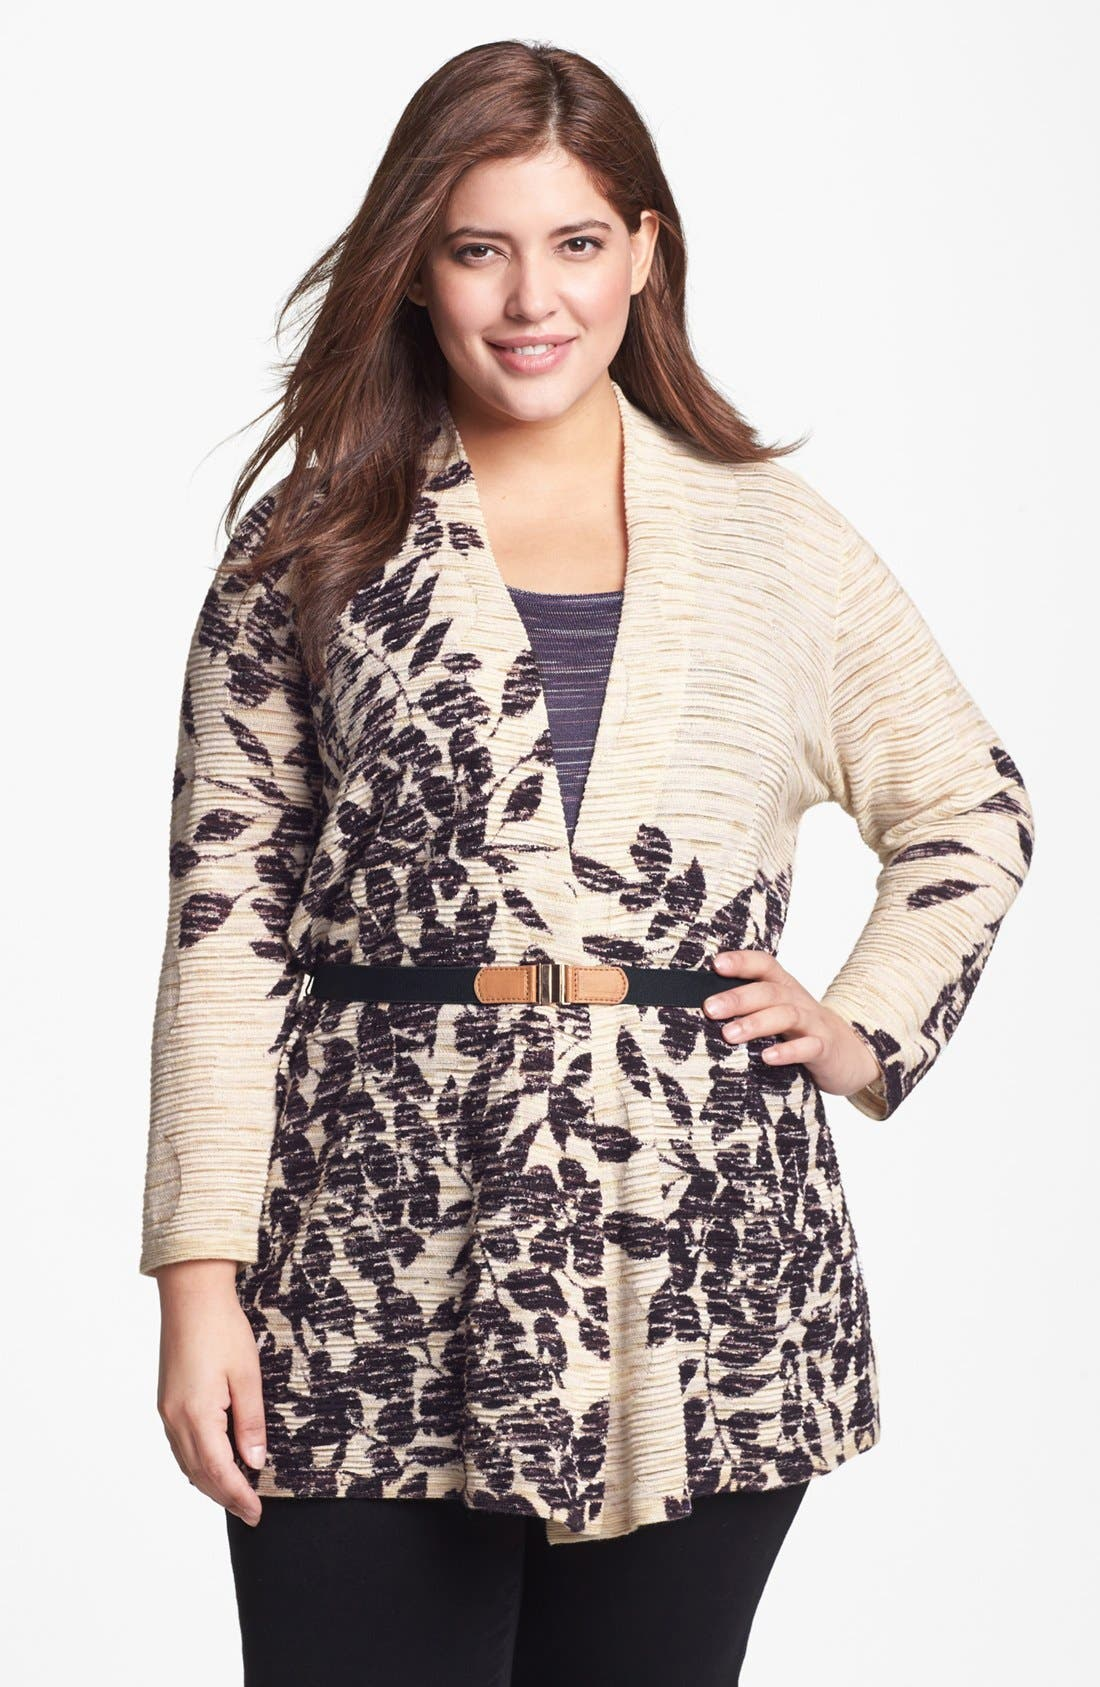 Alternate Image 1 Selected - NIC+ZOE 'Evening Leaves' Cardigan (Plus Size)